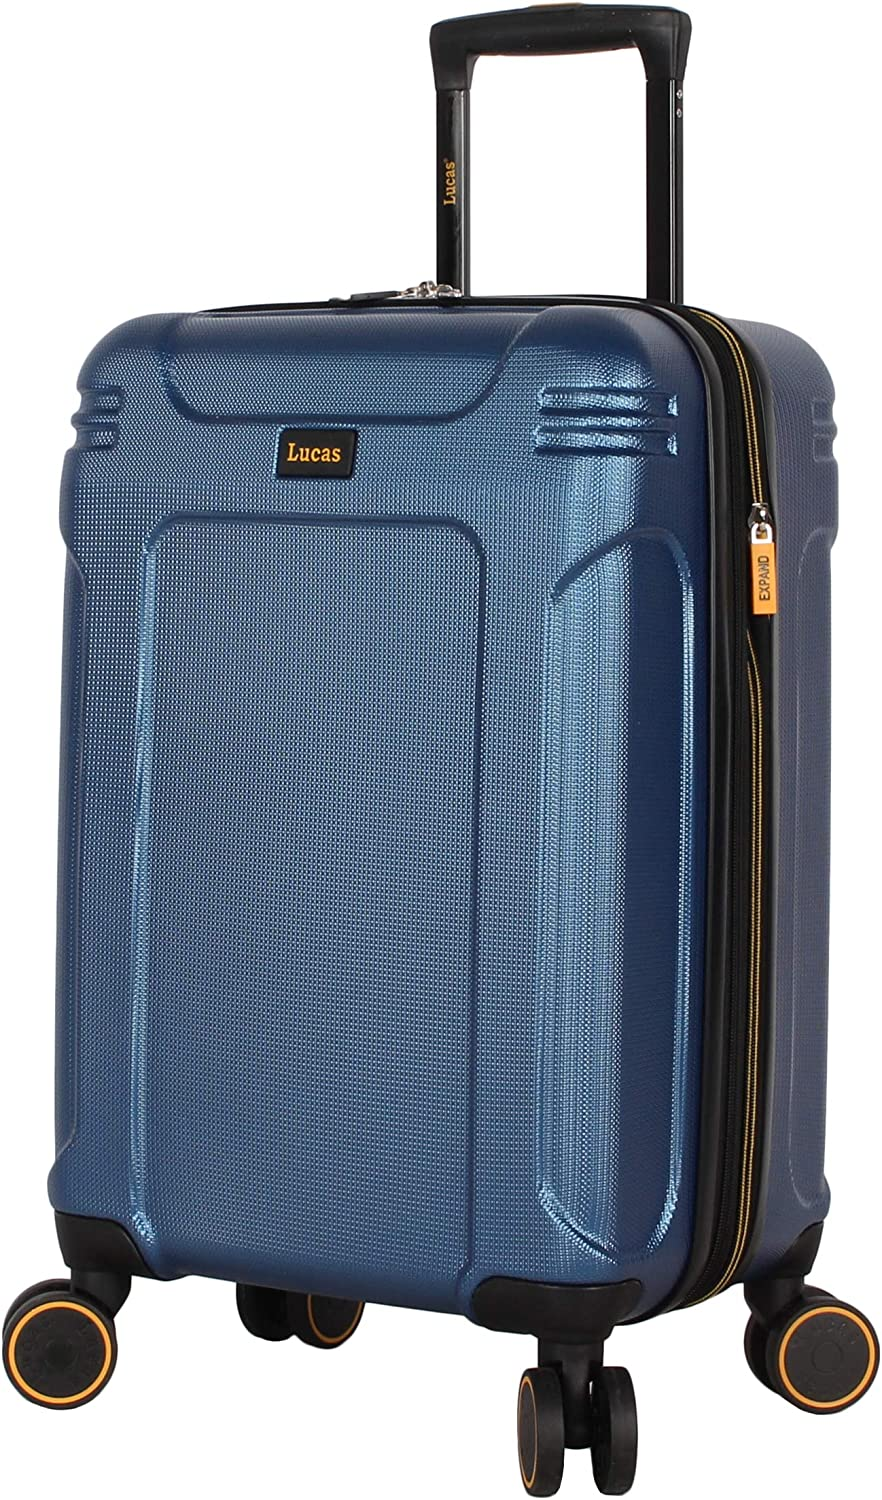 Lucas 20 Inch Carry On Luggage Collection - Expandable Scratch Resistant (ABS + PC) Hardside Suitcase - Designer Lightweight Bag with 8-Rolling Spinner Wheels (Quantum Dark Lake Blue)